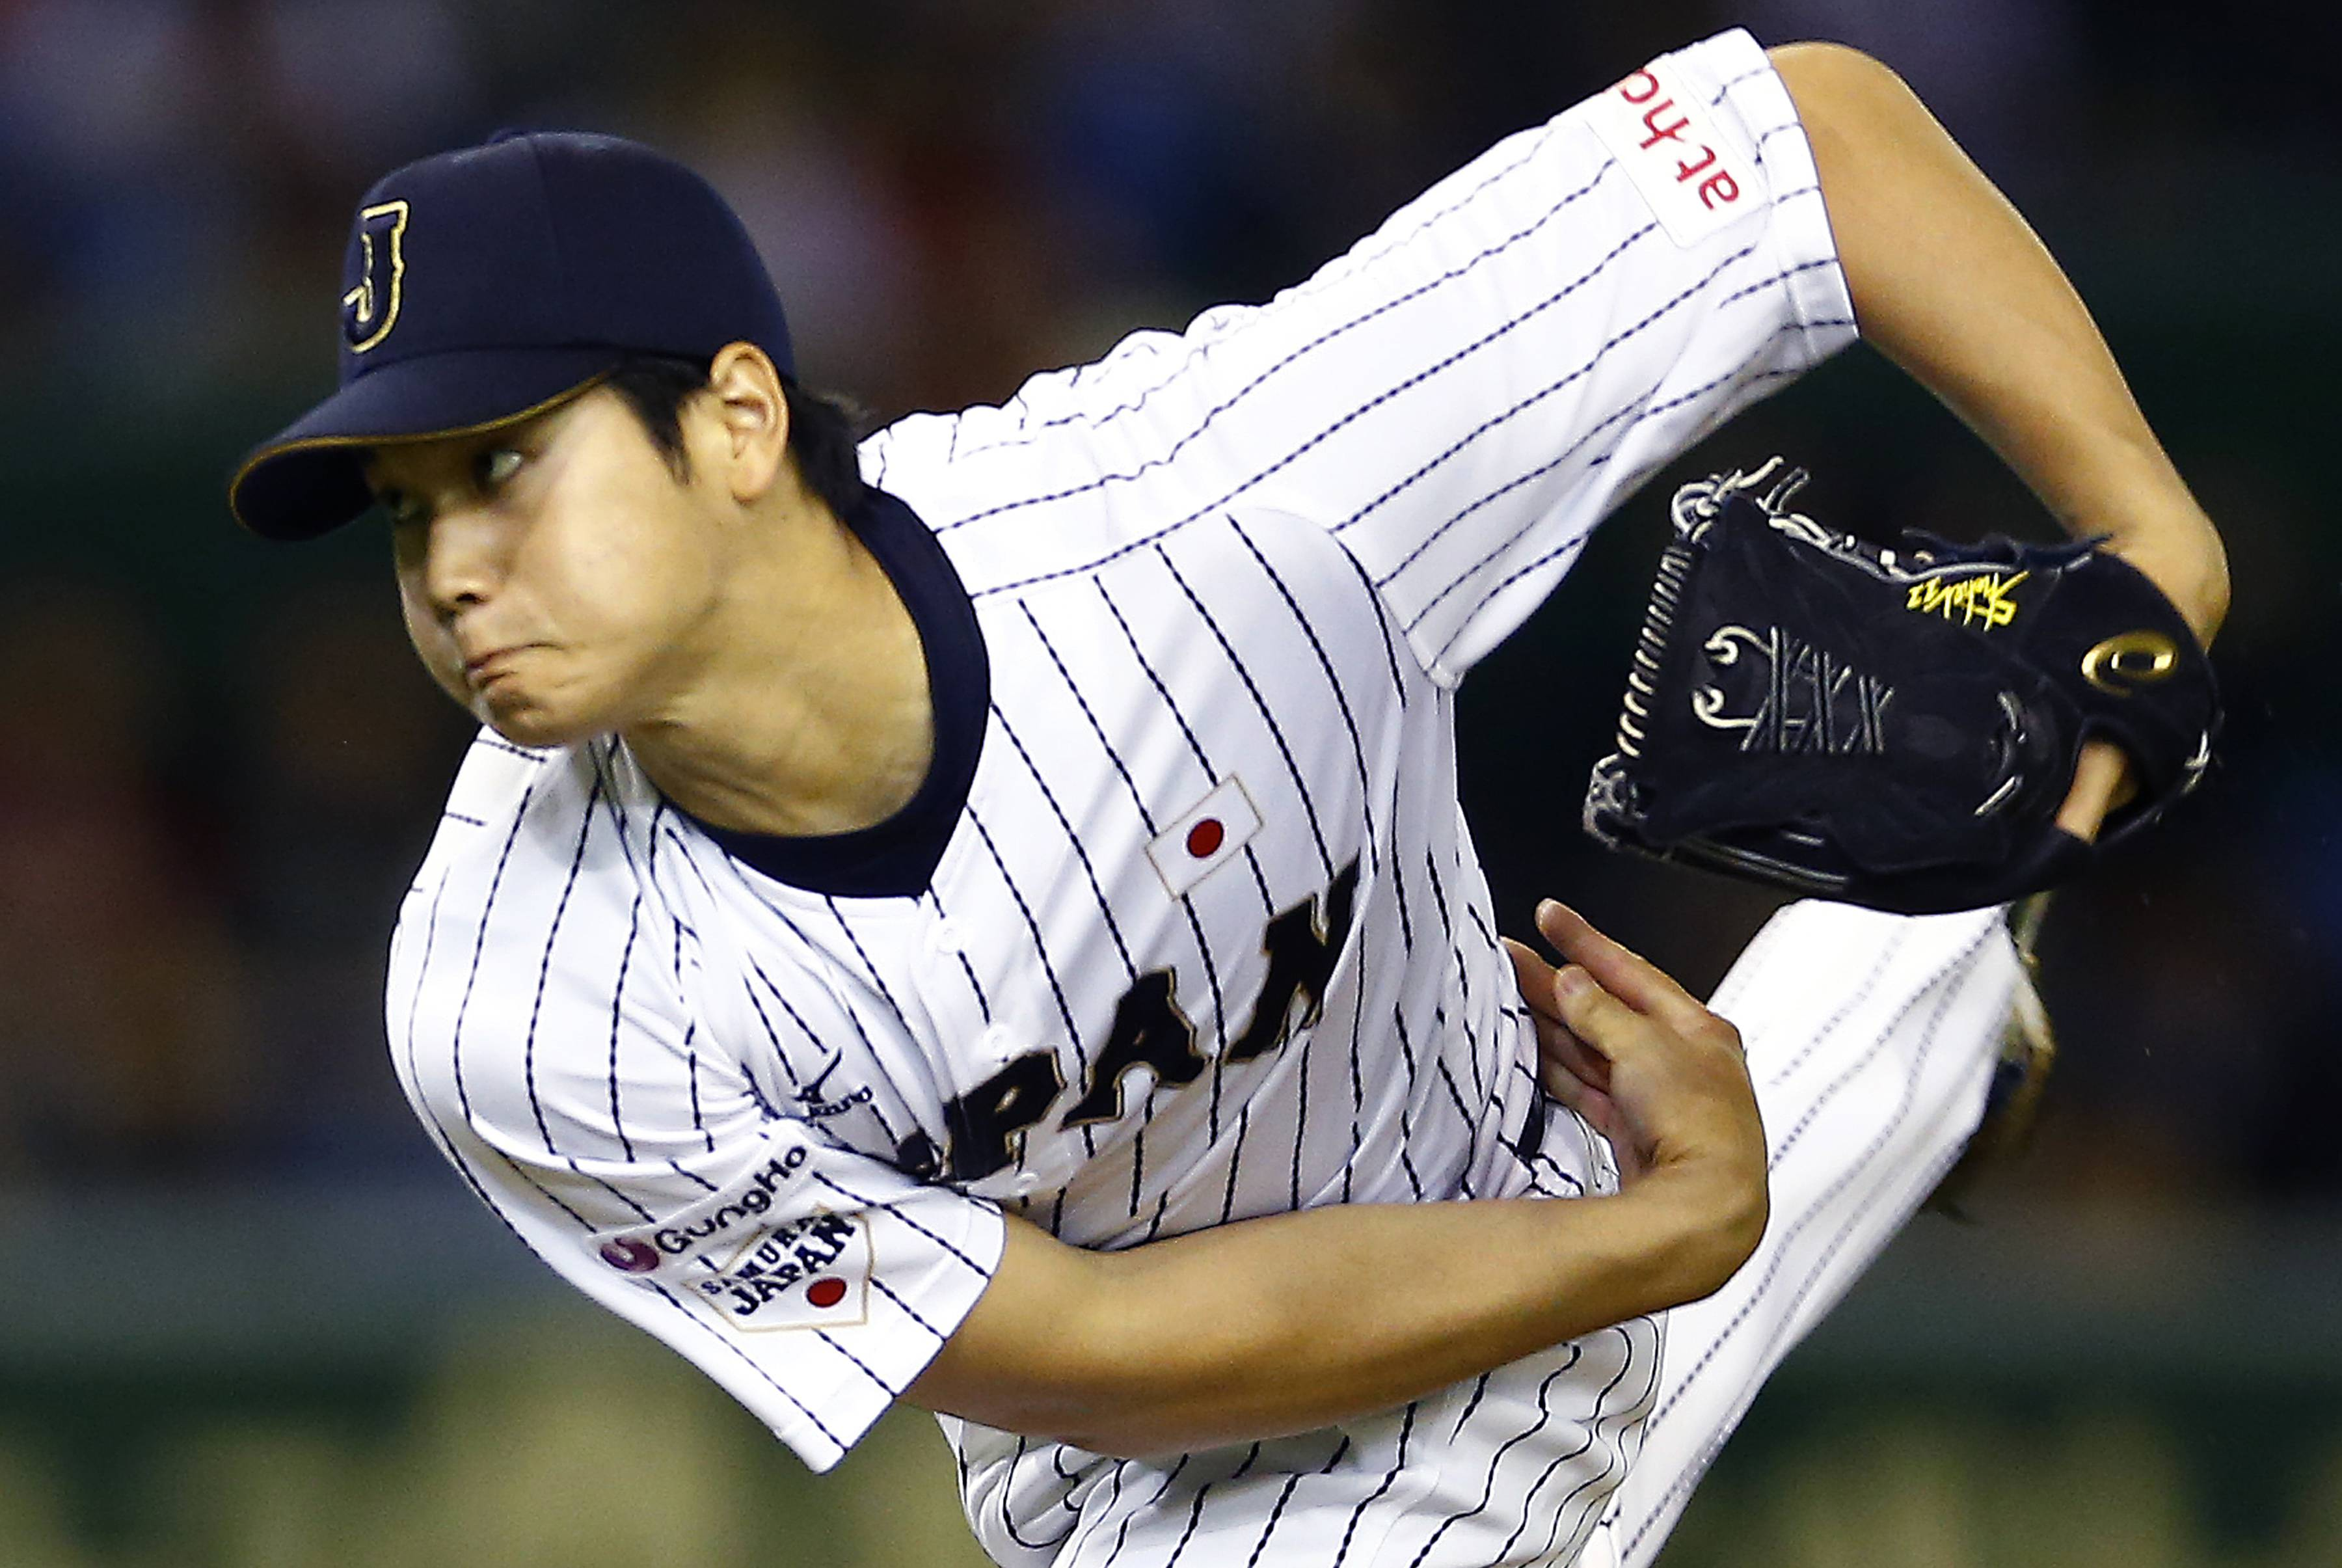 Japan starter Shohei Ohtani, the most coveted player in international baseball, has agreed to a deal with the Los Angeles Angels.